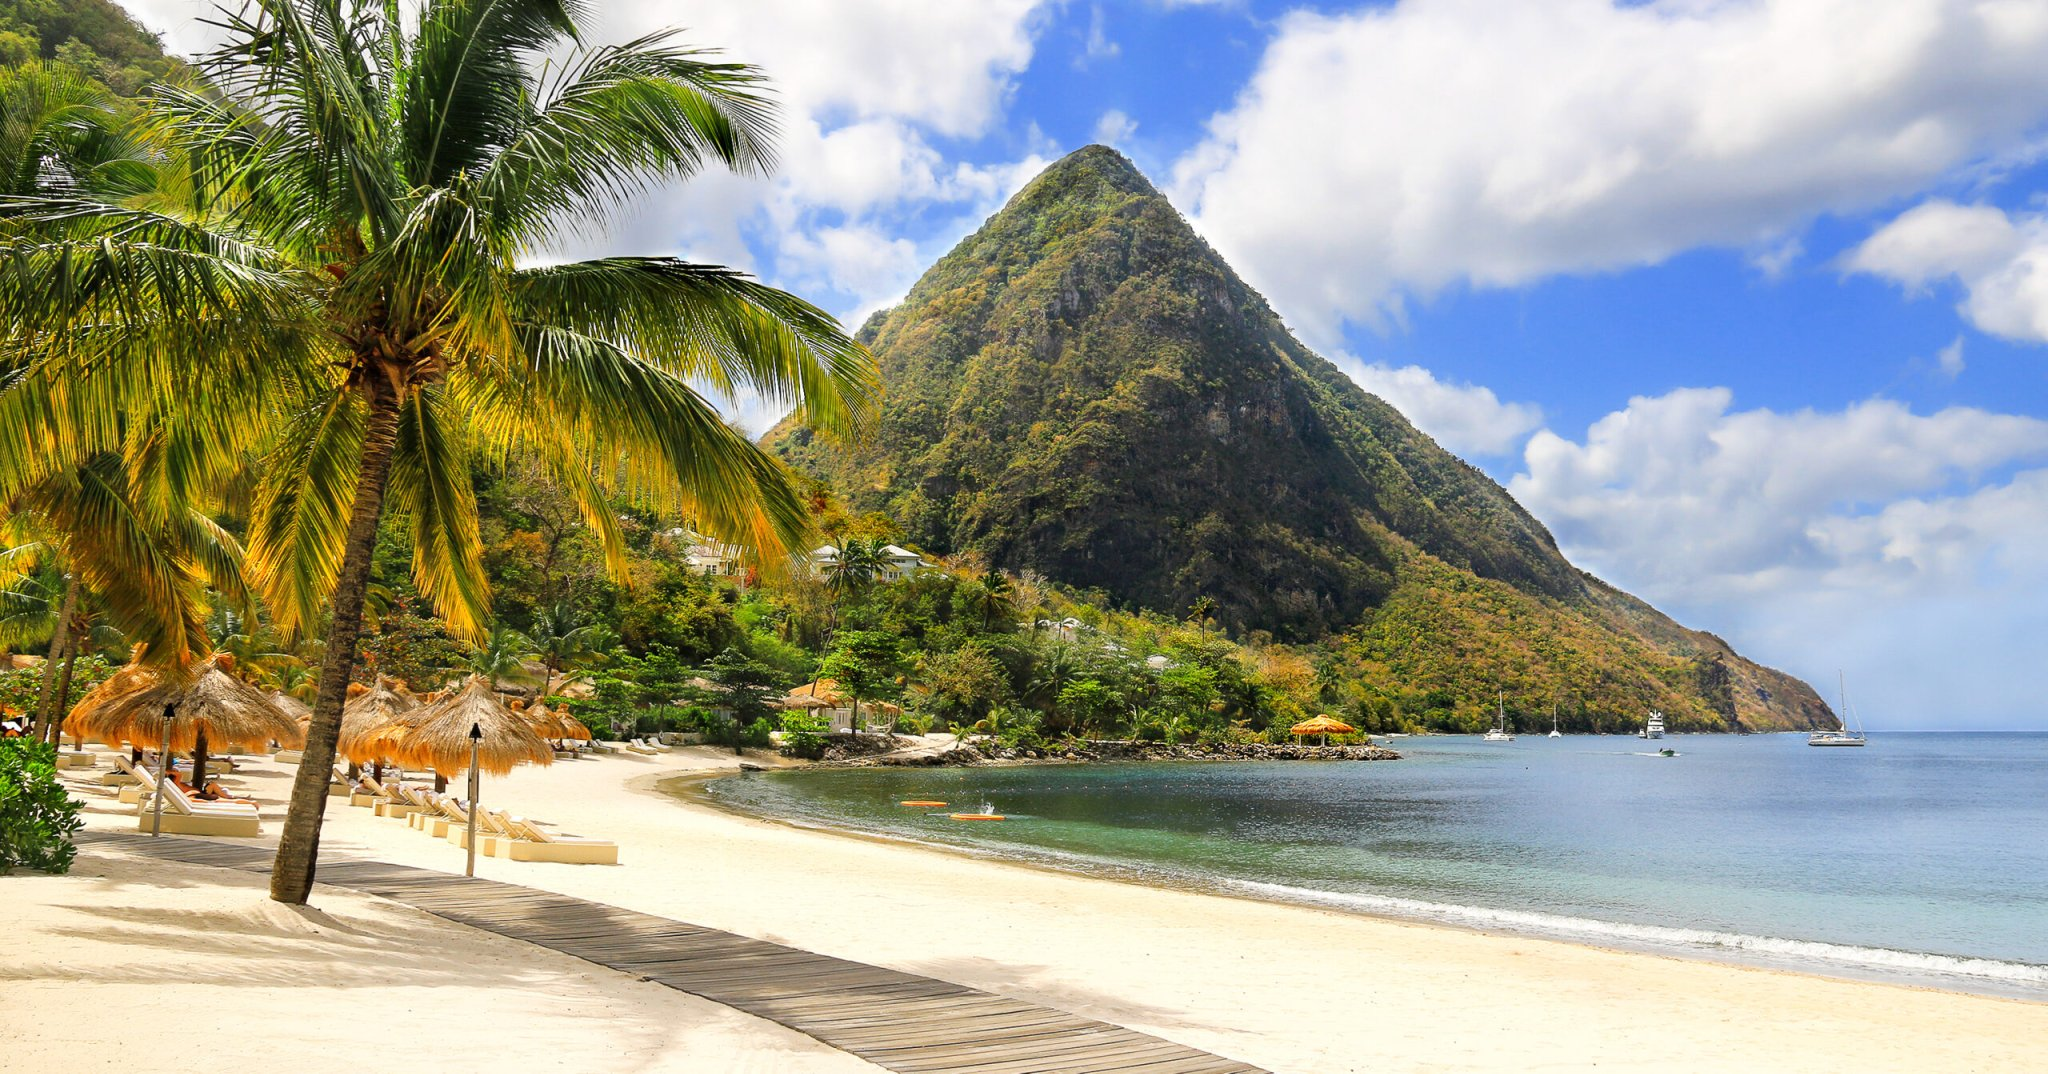 The Best Shore Excursions To Book On Saint Lucia